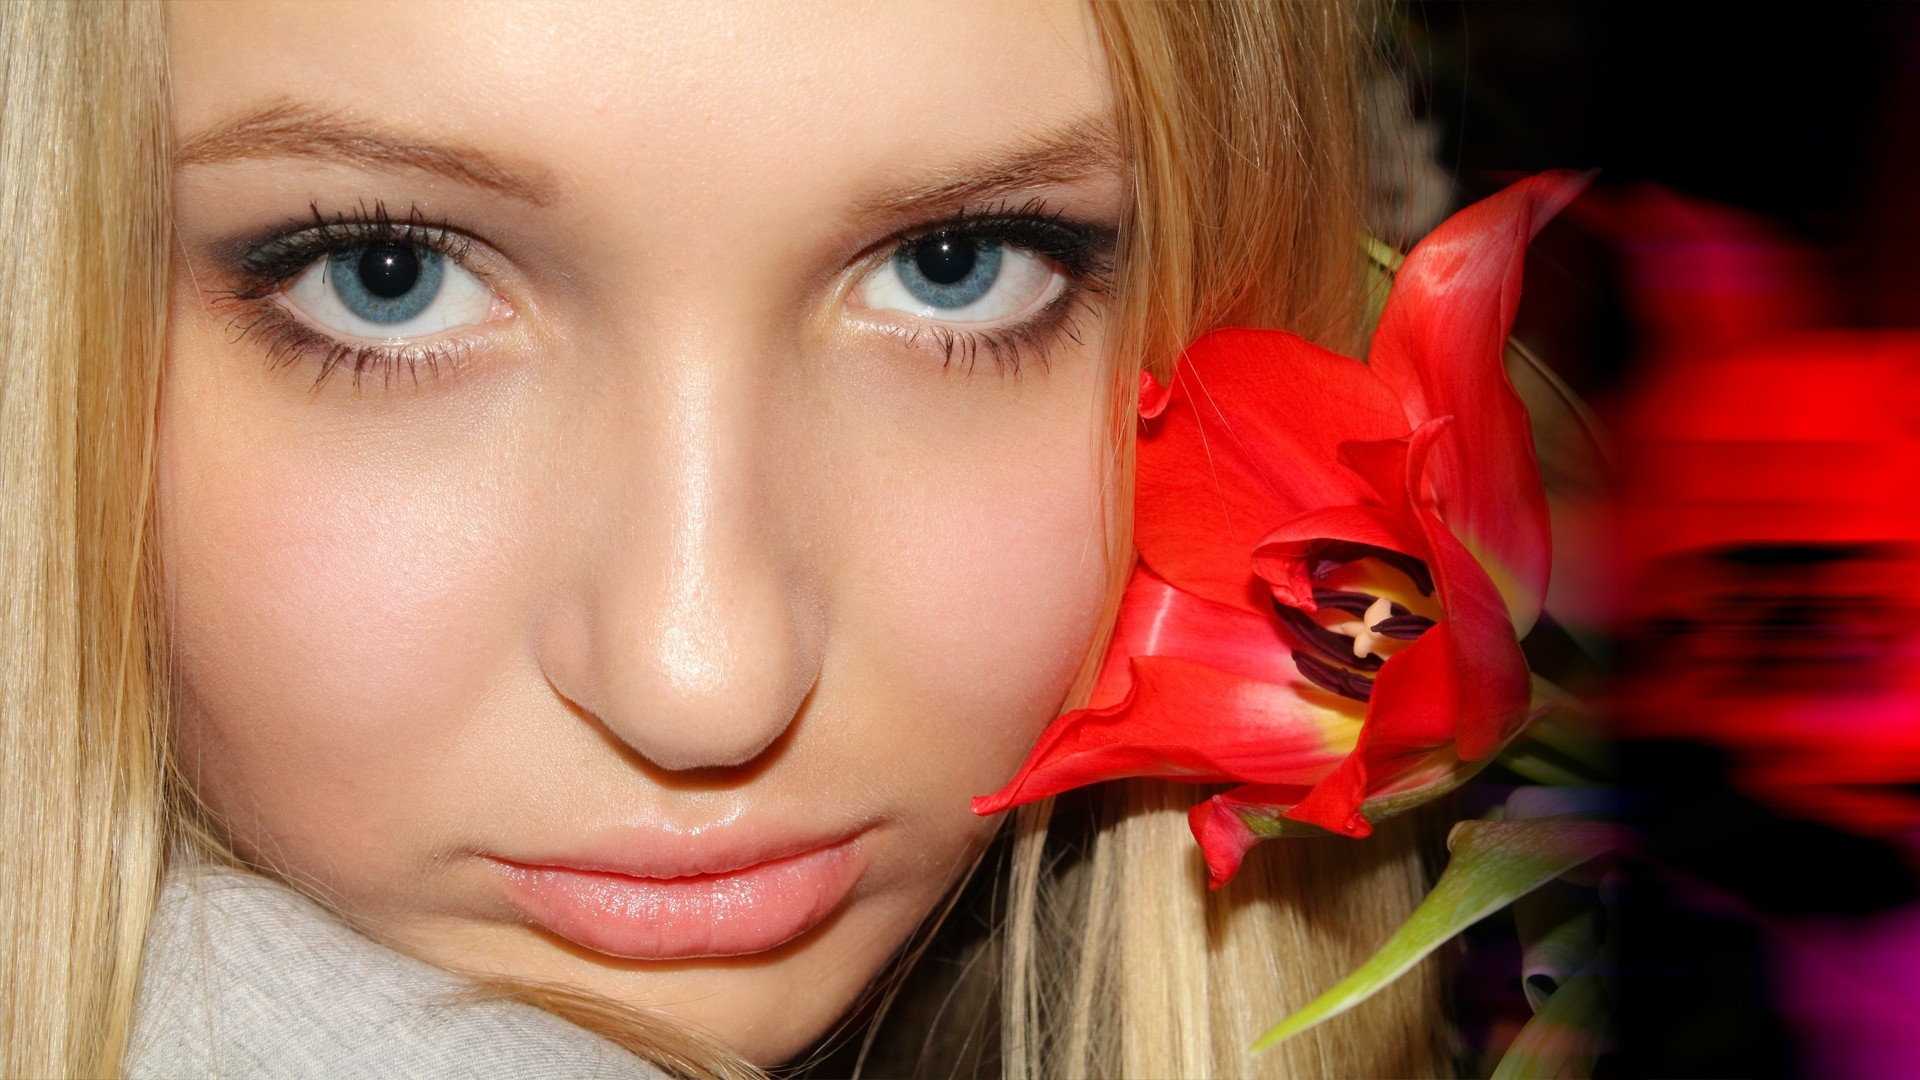 blondes woman close-up Flowers HD Wallpaper